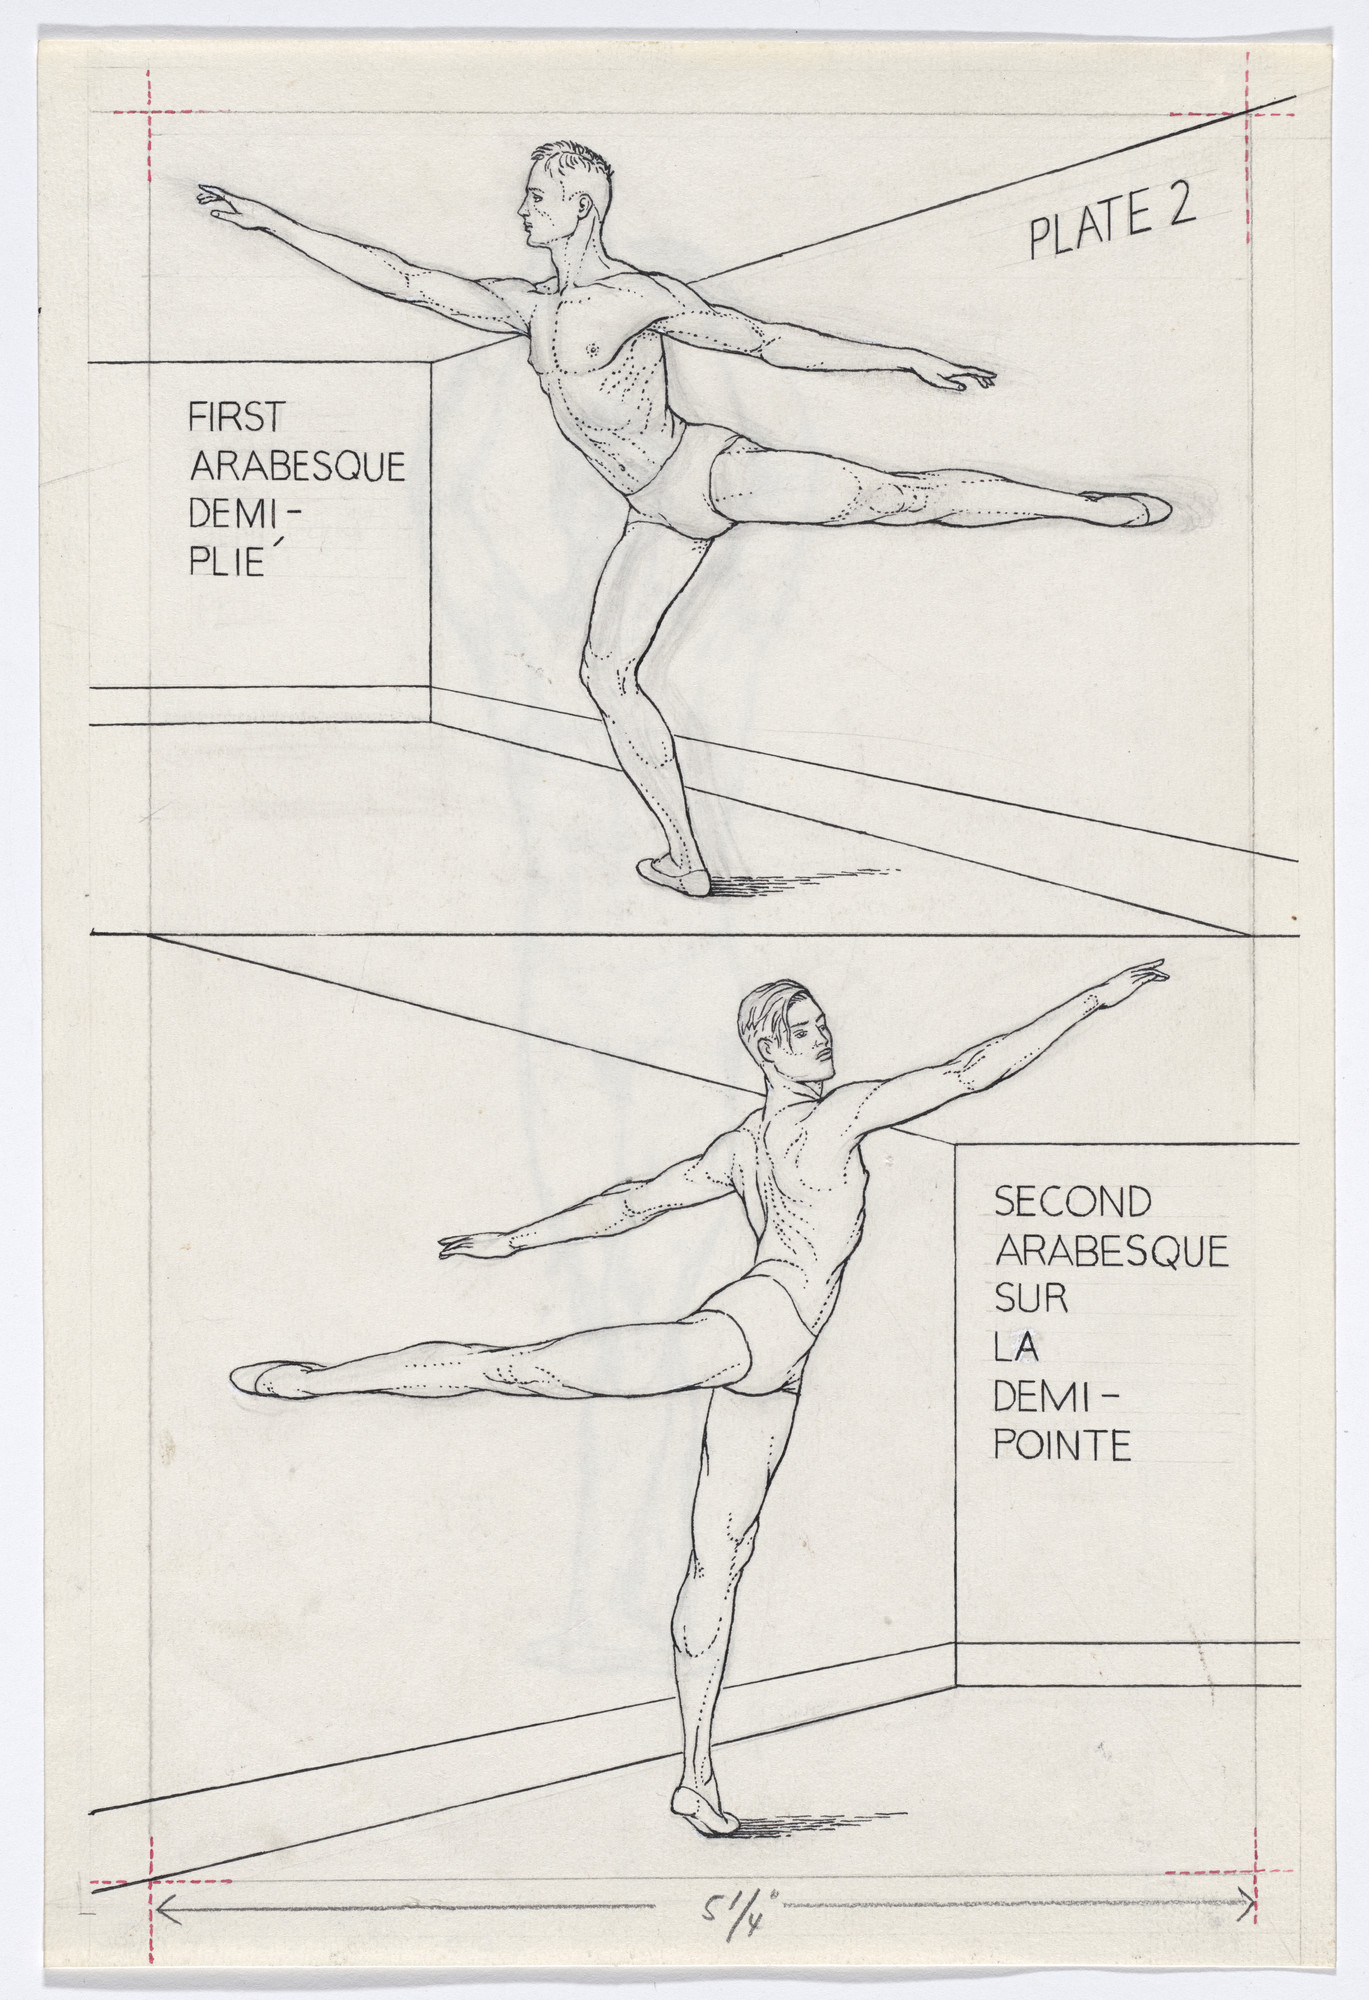 Paul Cadmus  Plate 2 from Ballet Positions  Drawing for